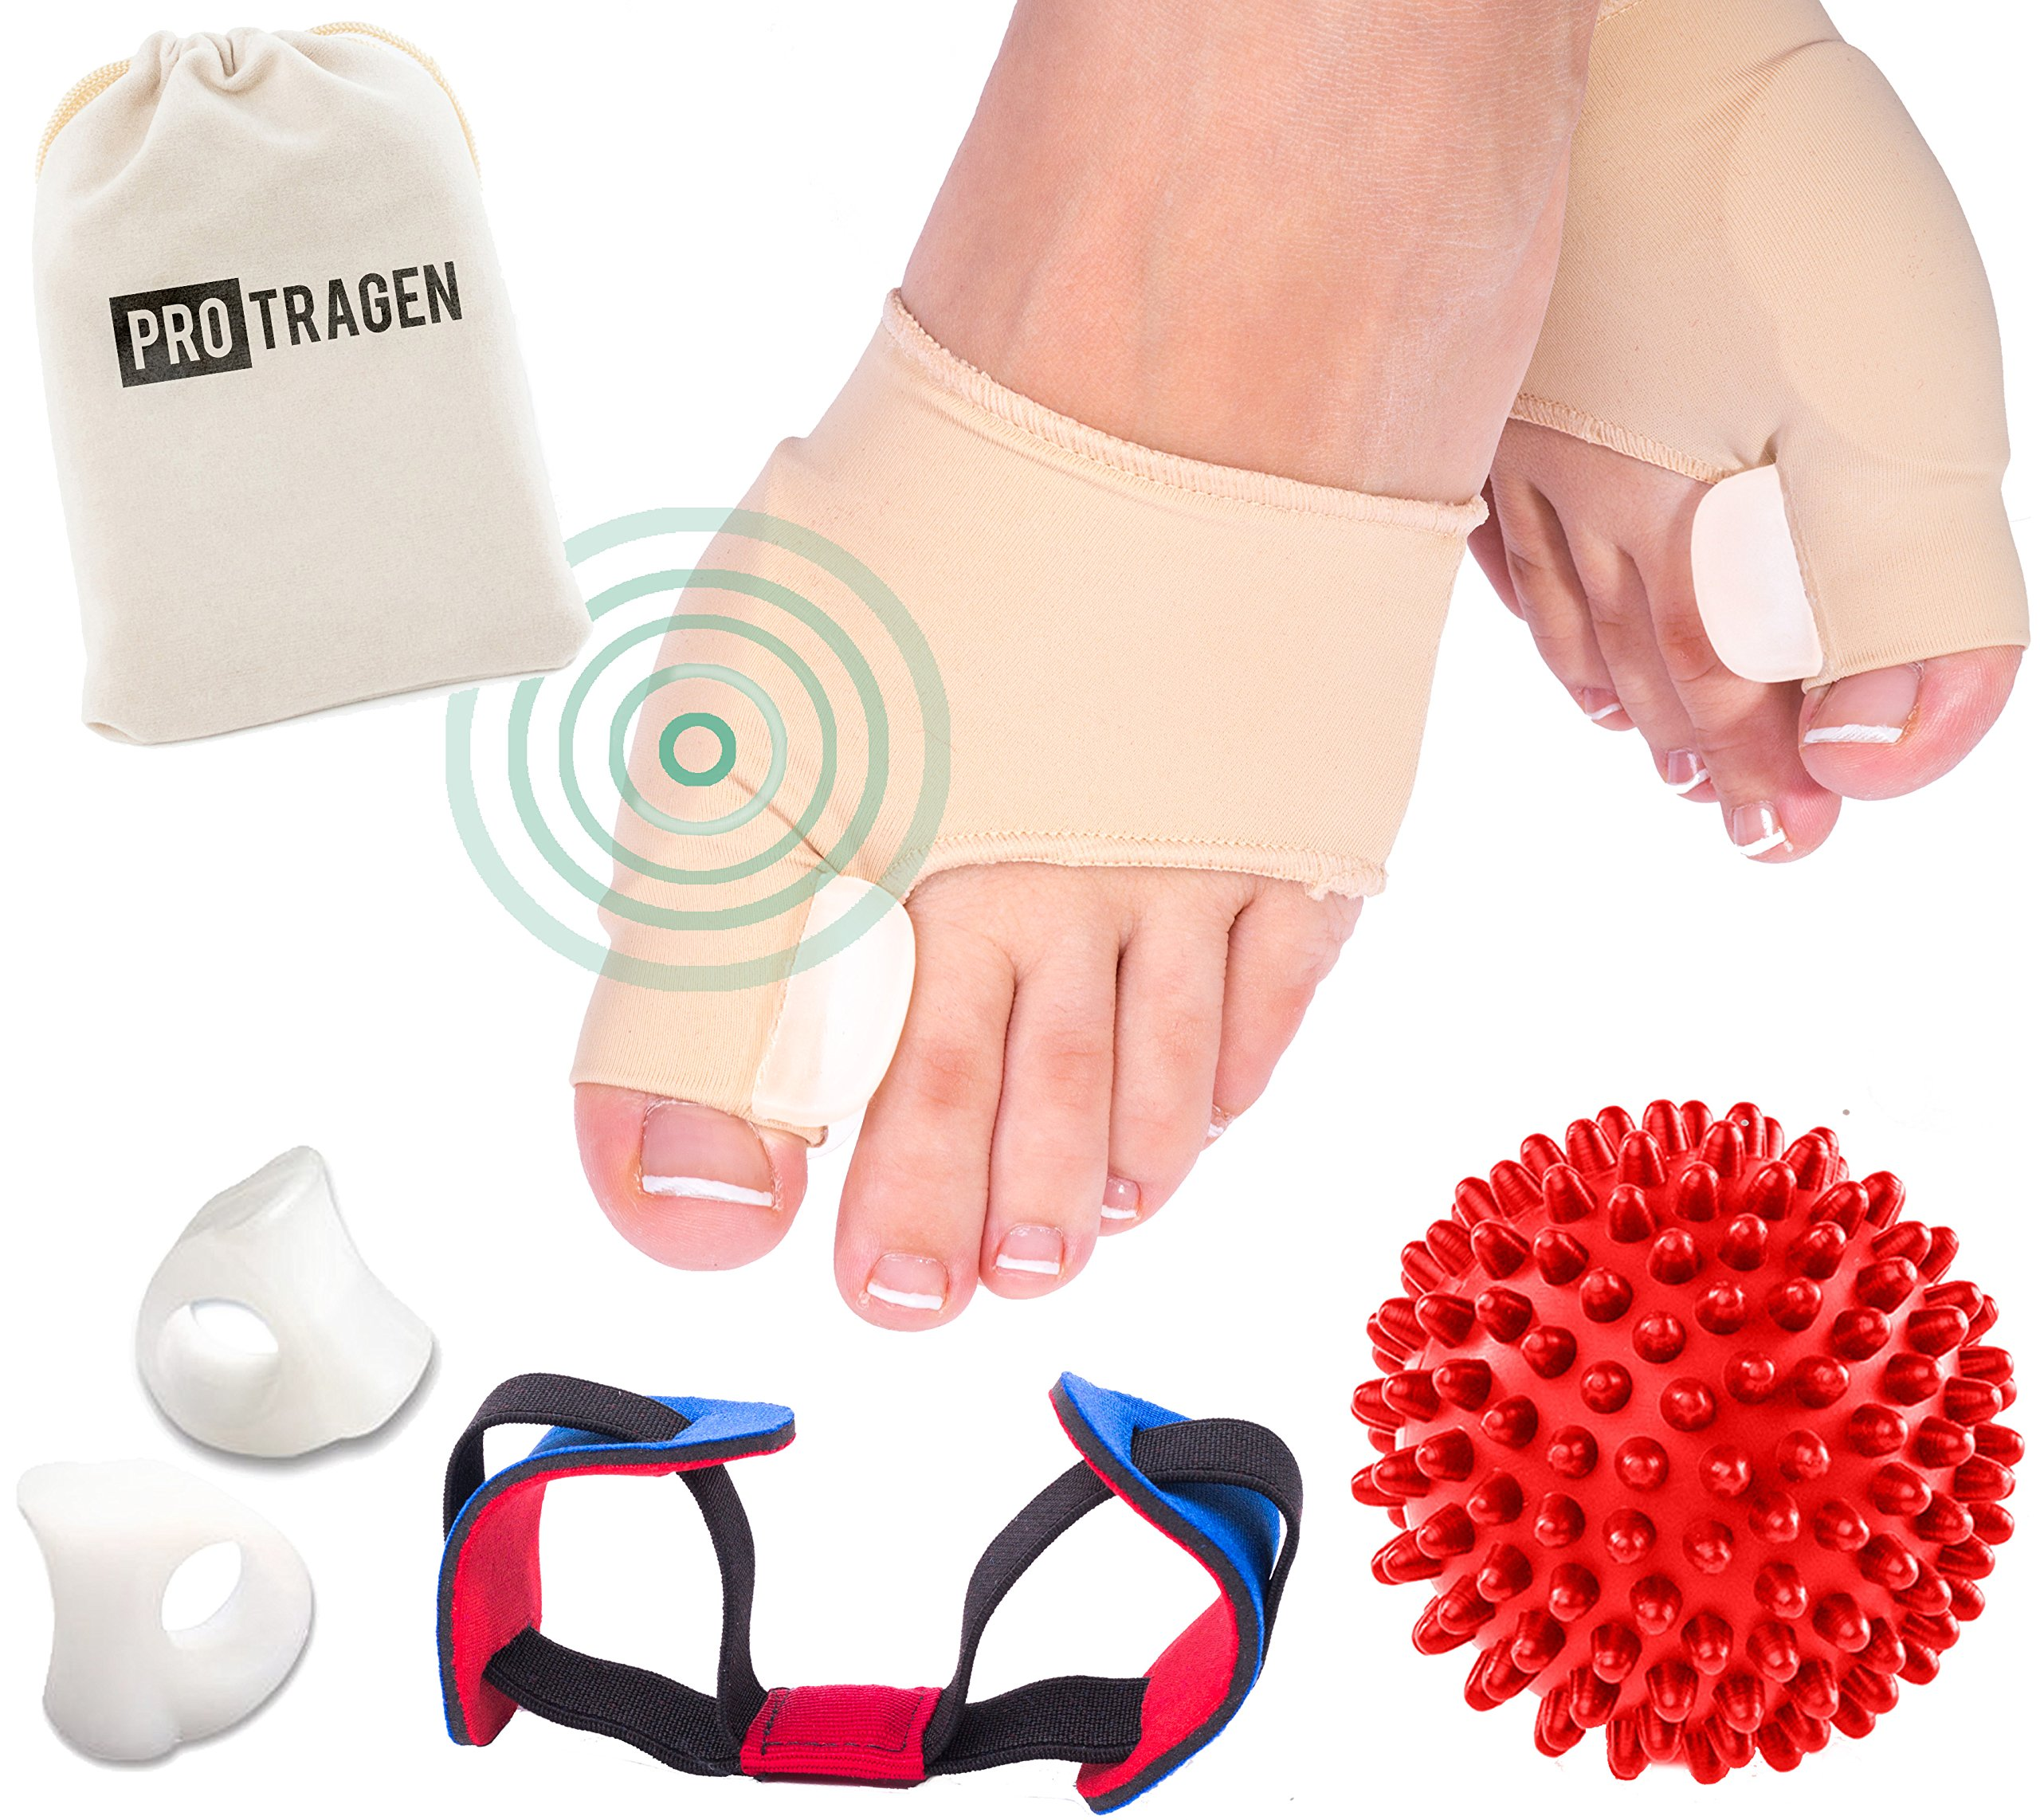 Bunion Correctors and Foot Massage Ball Set – Flexible Bunion Split Sleeve for Men and Women with Hypoallergenic Gel Pads – Also Suitable for Hammertoe and Crooked Toes